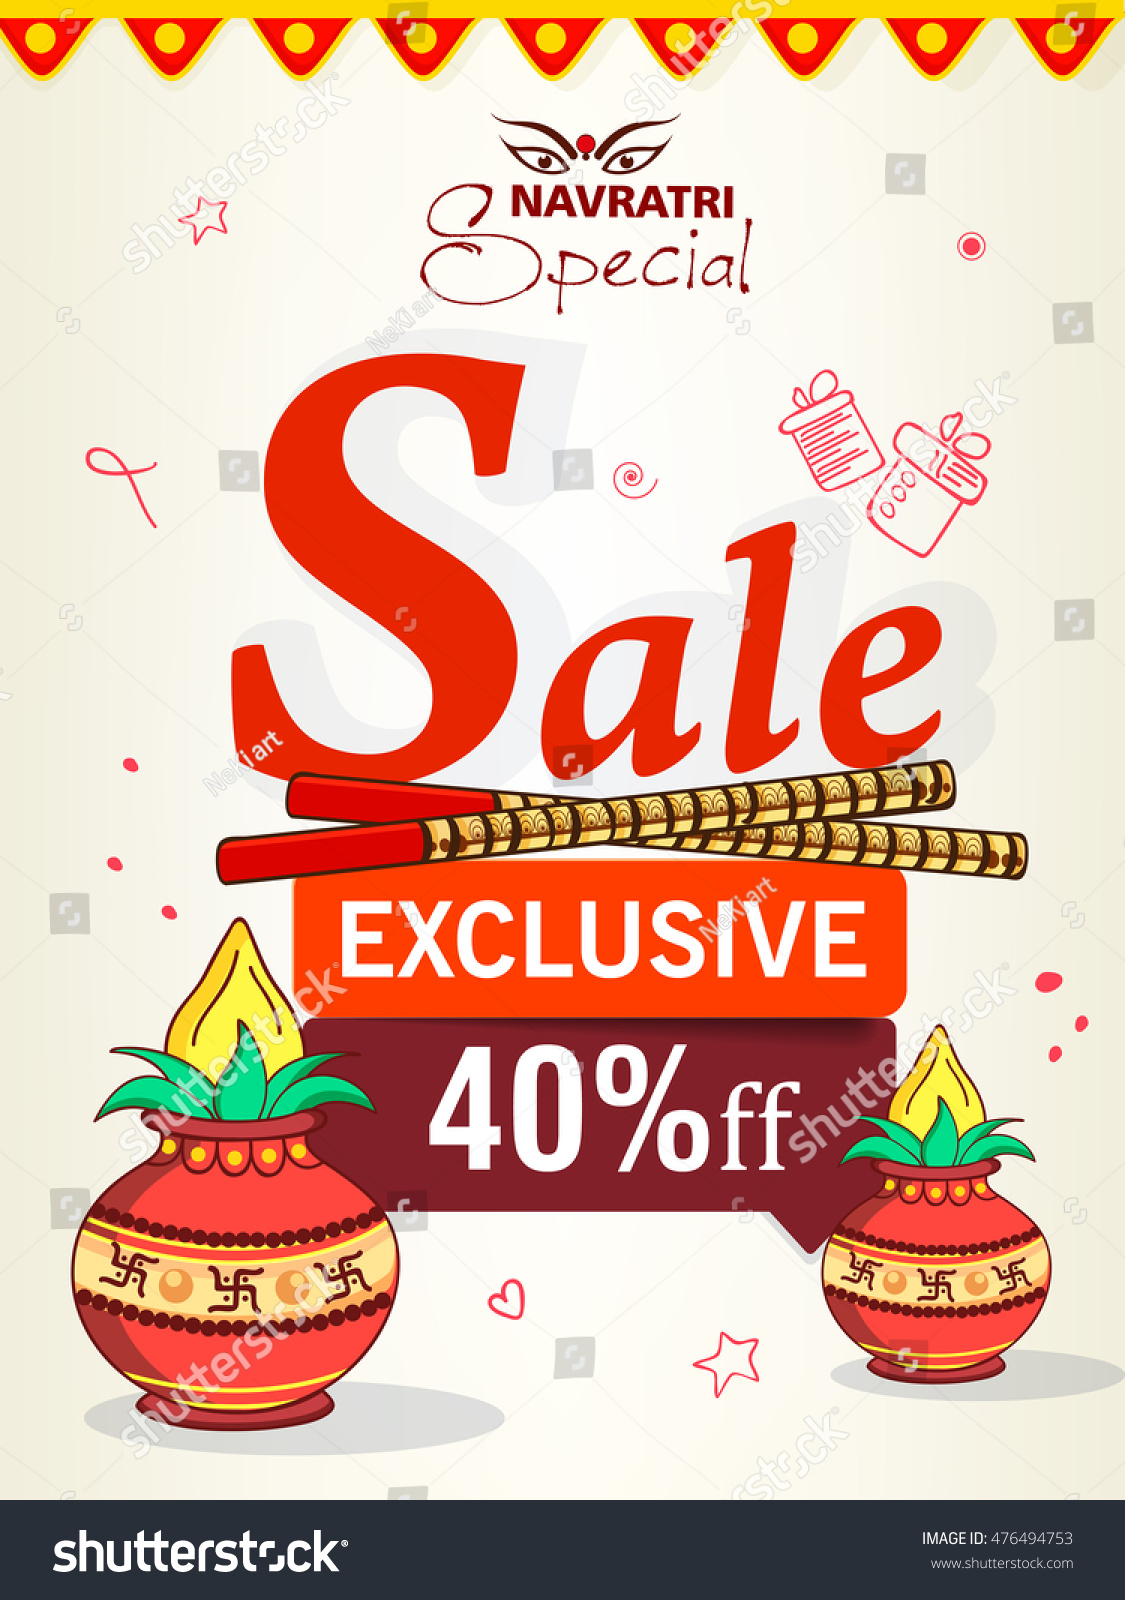 flyer banner poster design offer stock vector 476494753 flyer banner or poster design for offer tags on the occassion of hindu